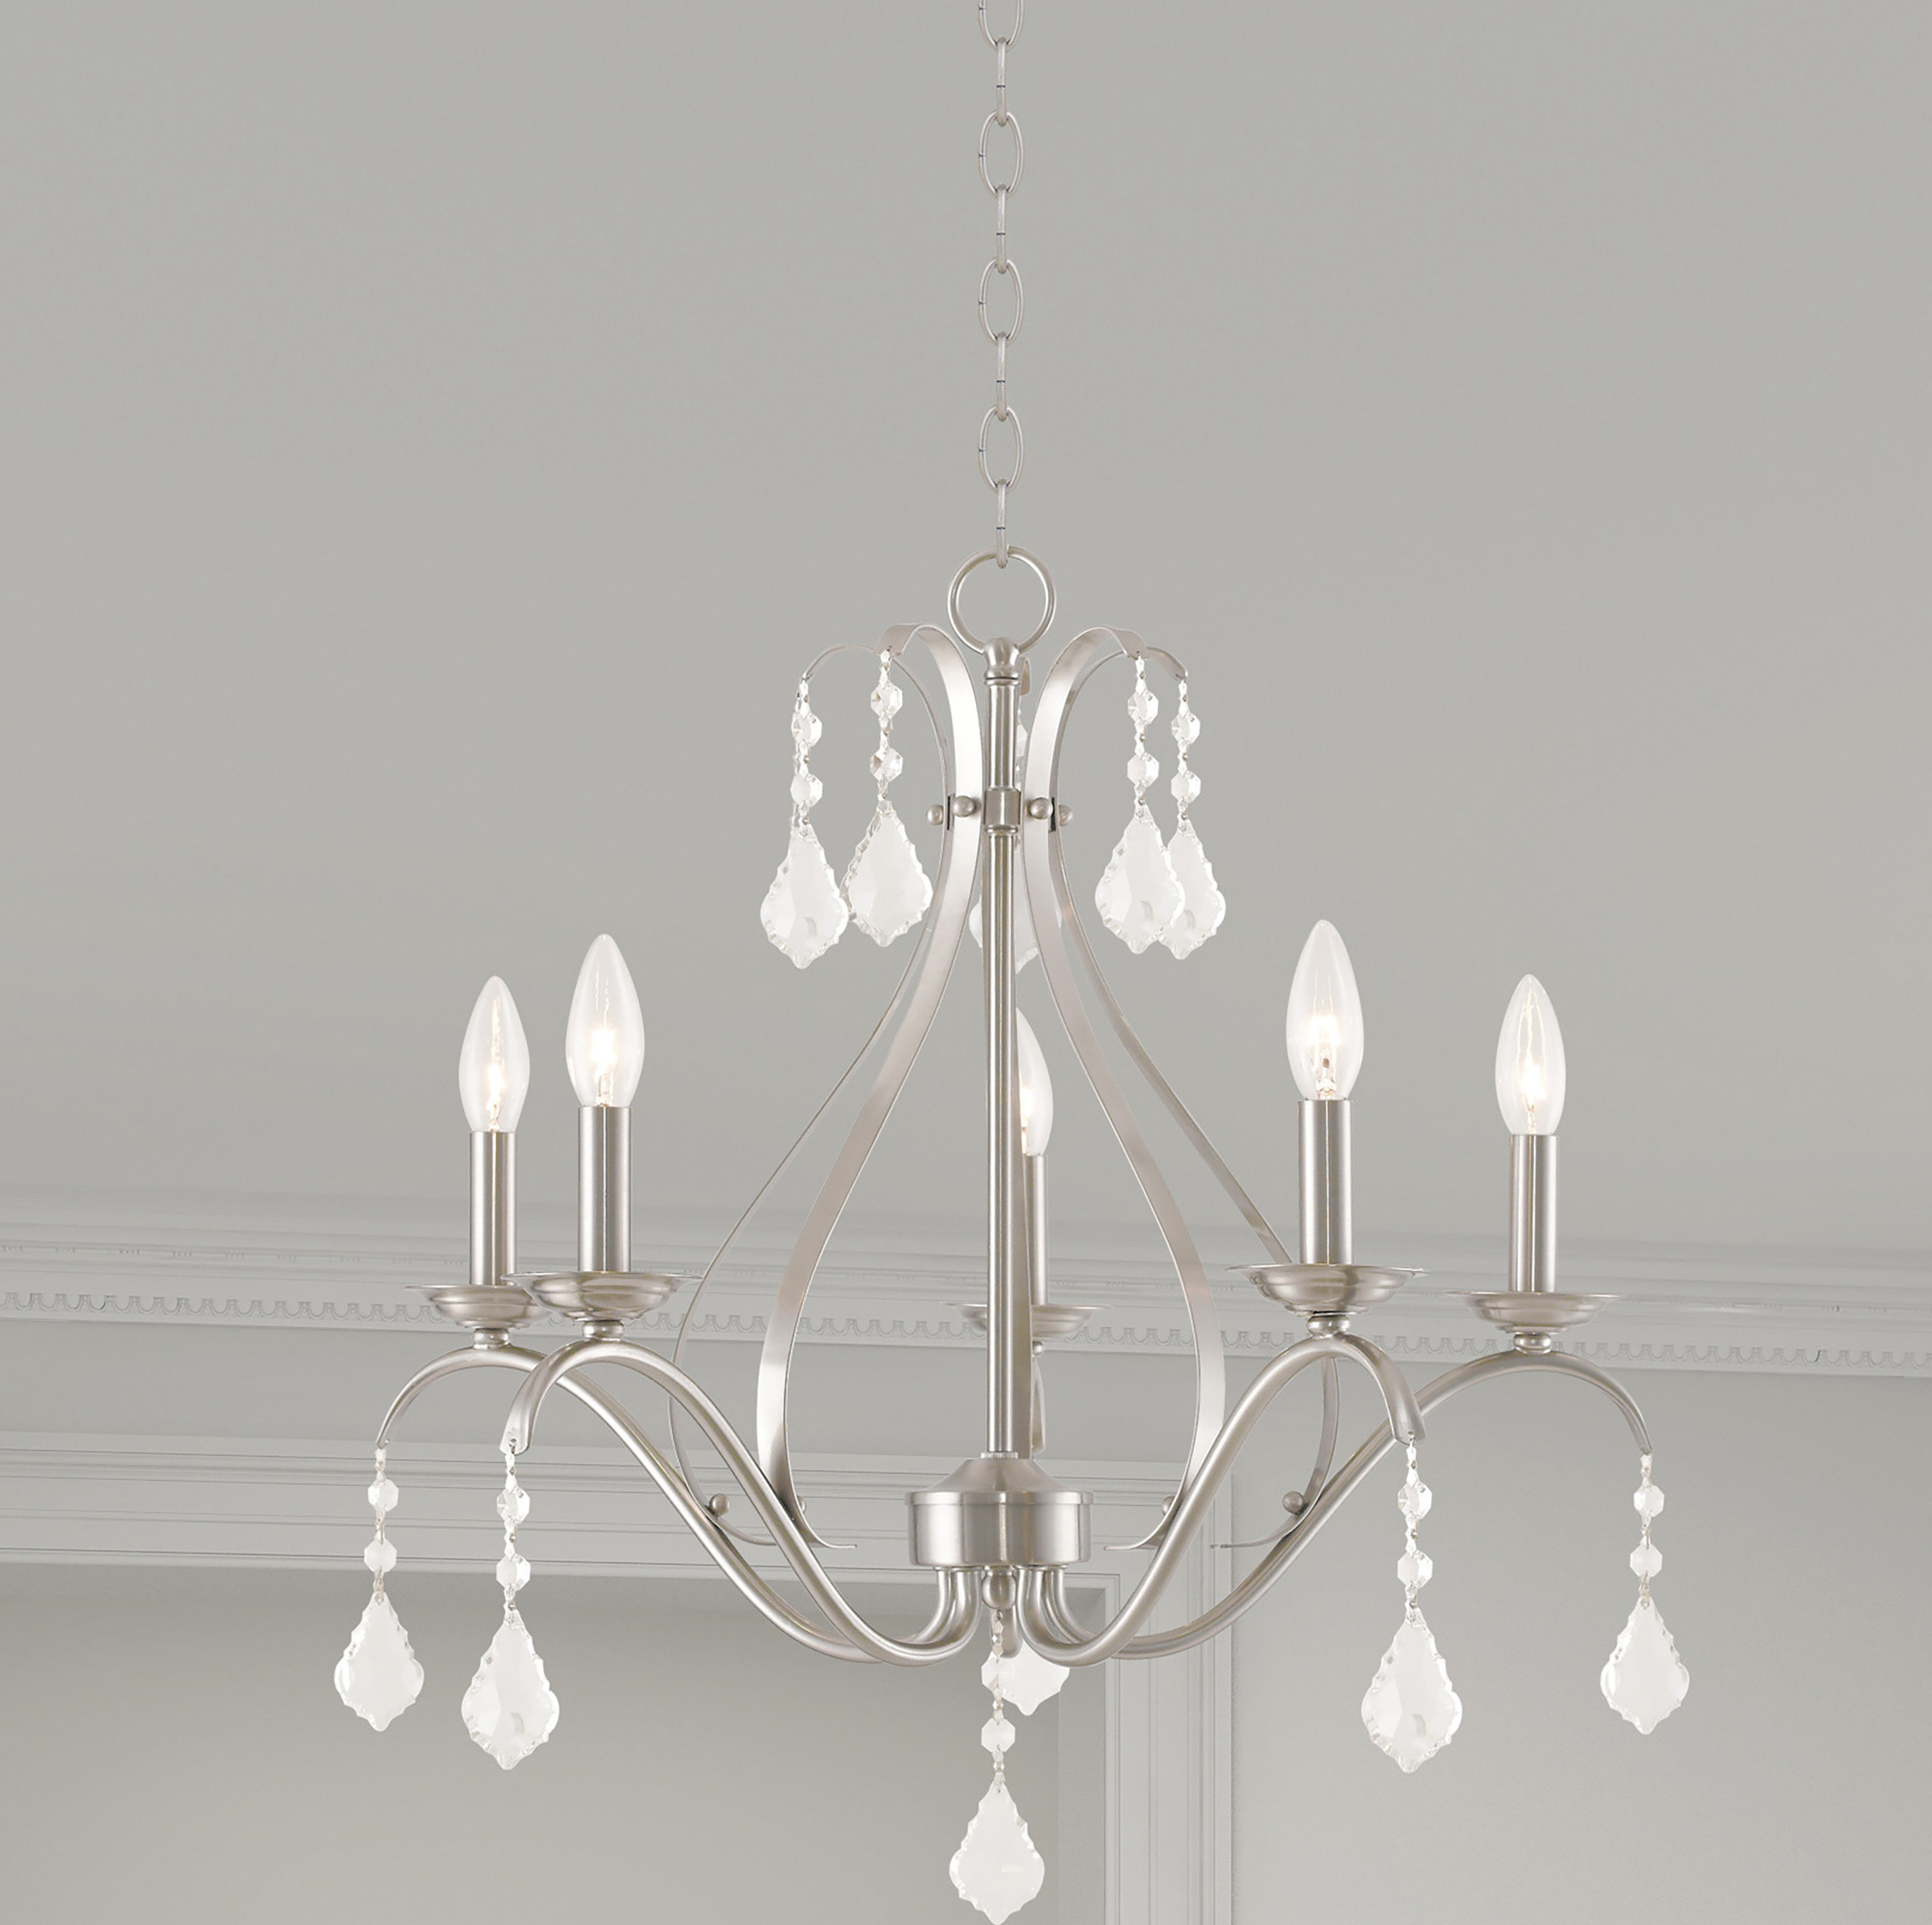 Aria 5 Light Candle Style Chandelier Regarding Most Up To Date Hesse 5 Light Candle Style Chandeliers (View 3 of 25)